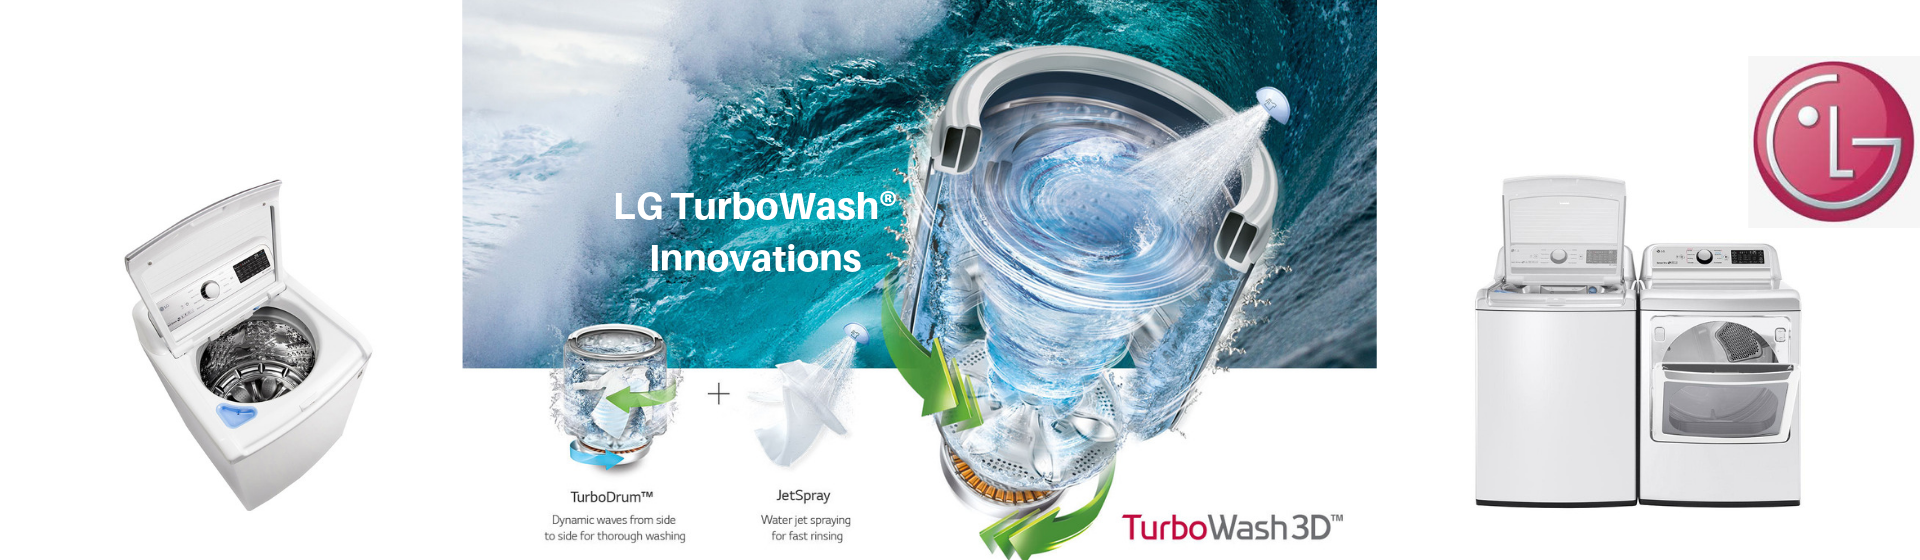 LG turbowash innovations